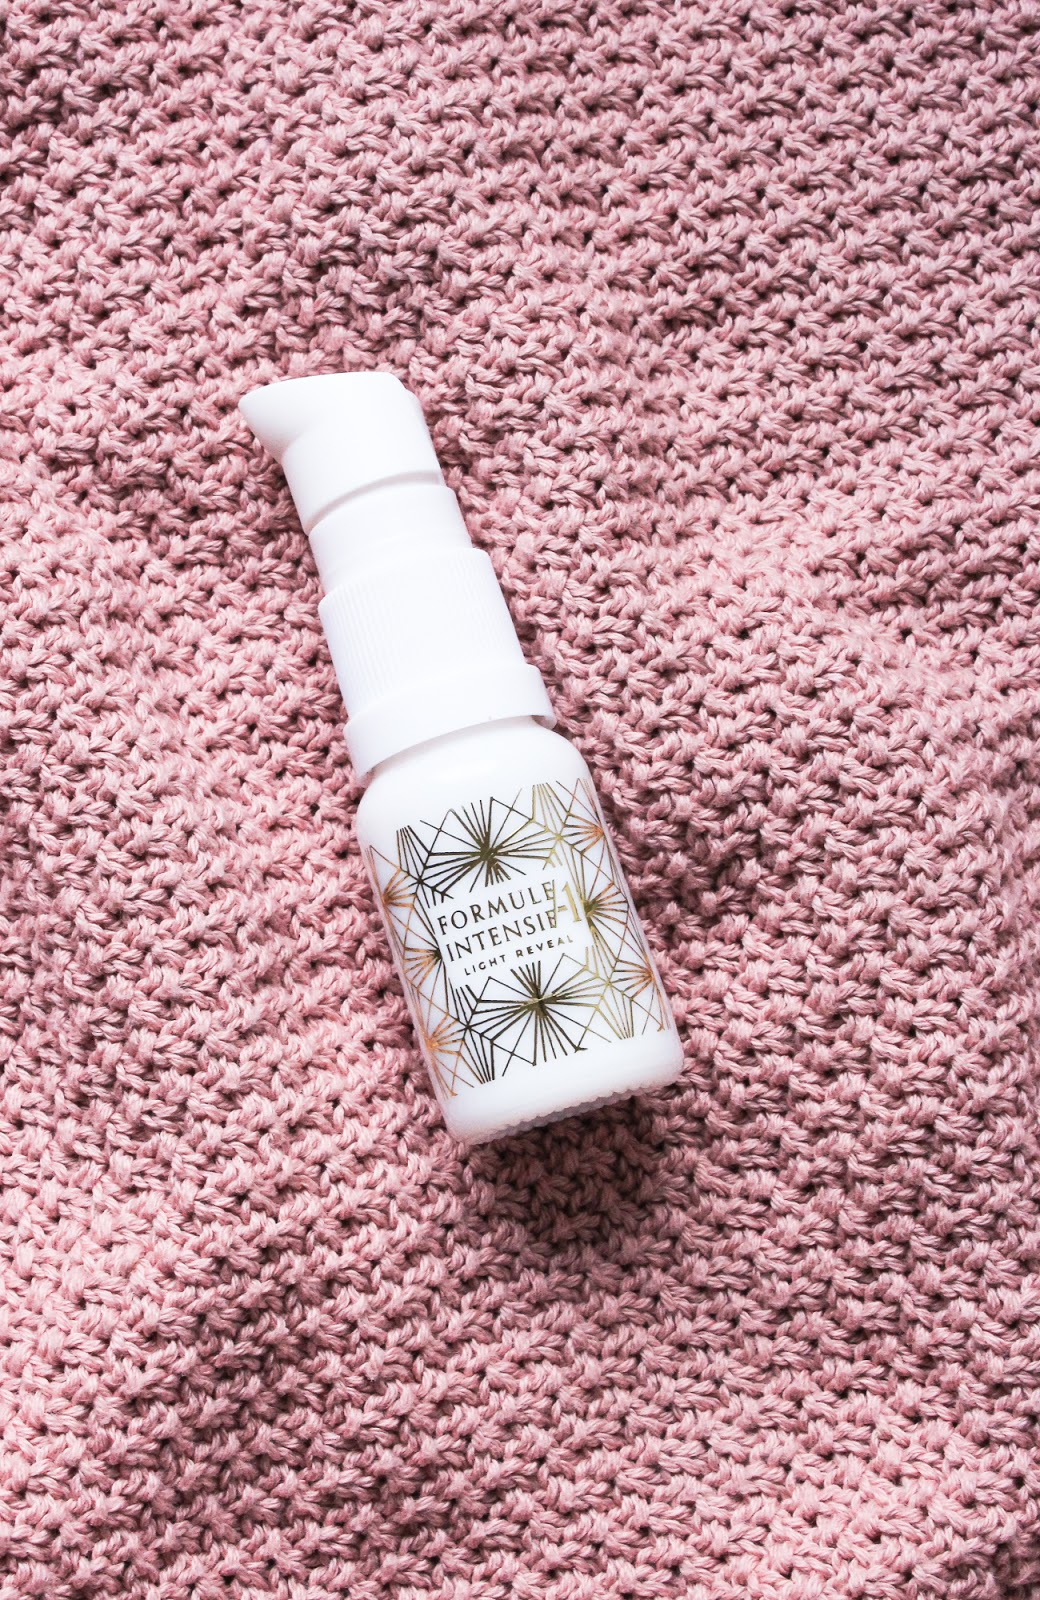 Wabi-Sabi Botanicals Light Reveal Targeted Treatment Serum Indie Beauty Spotlight Discovery by Beauty Heroes